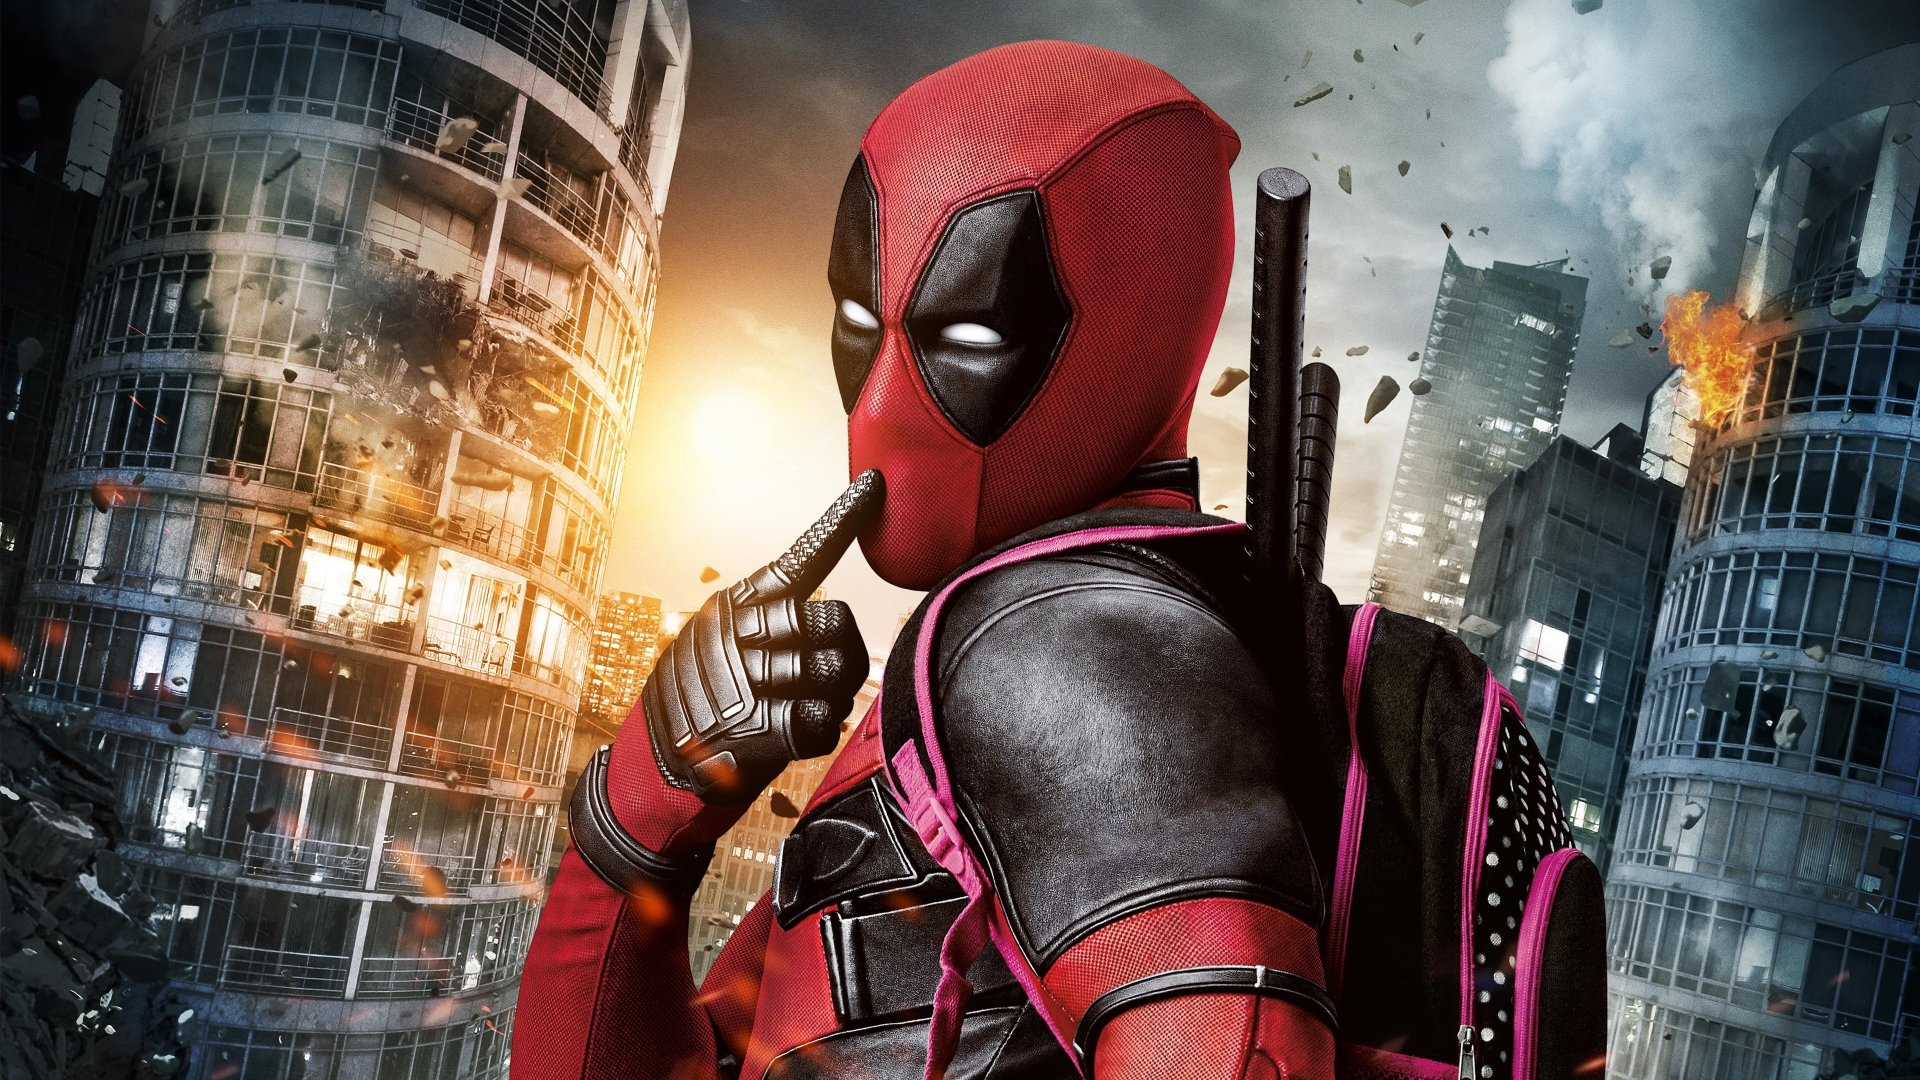 56 Deadpool Hd Wallpapers Background Images Wallpaper Abyss